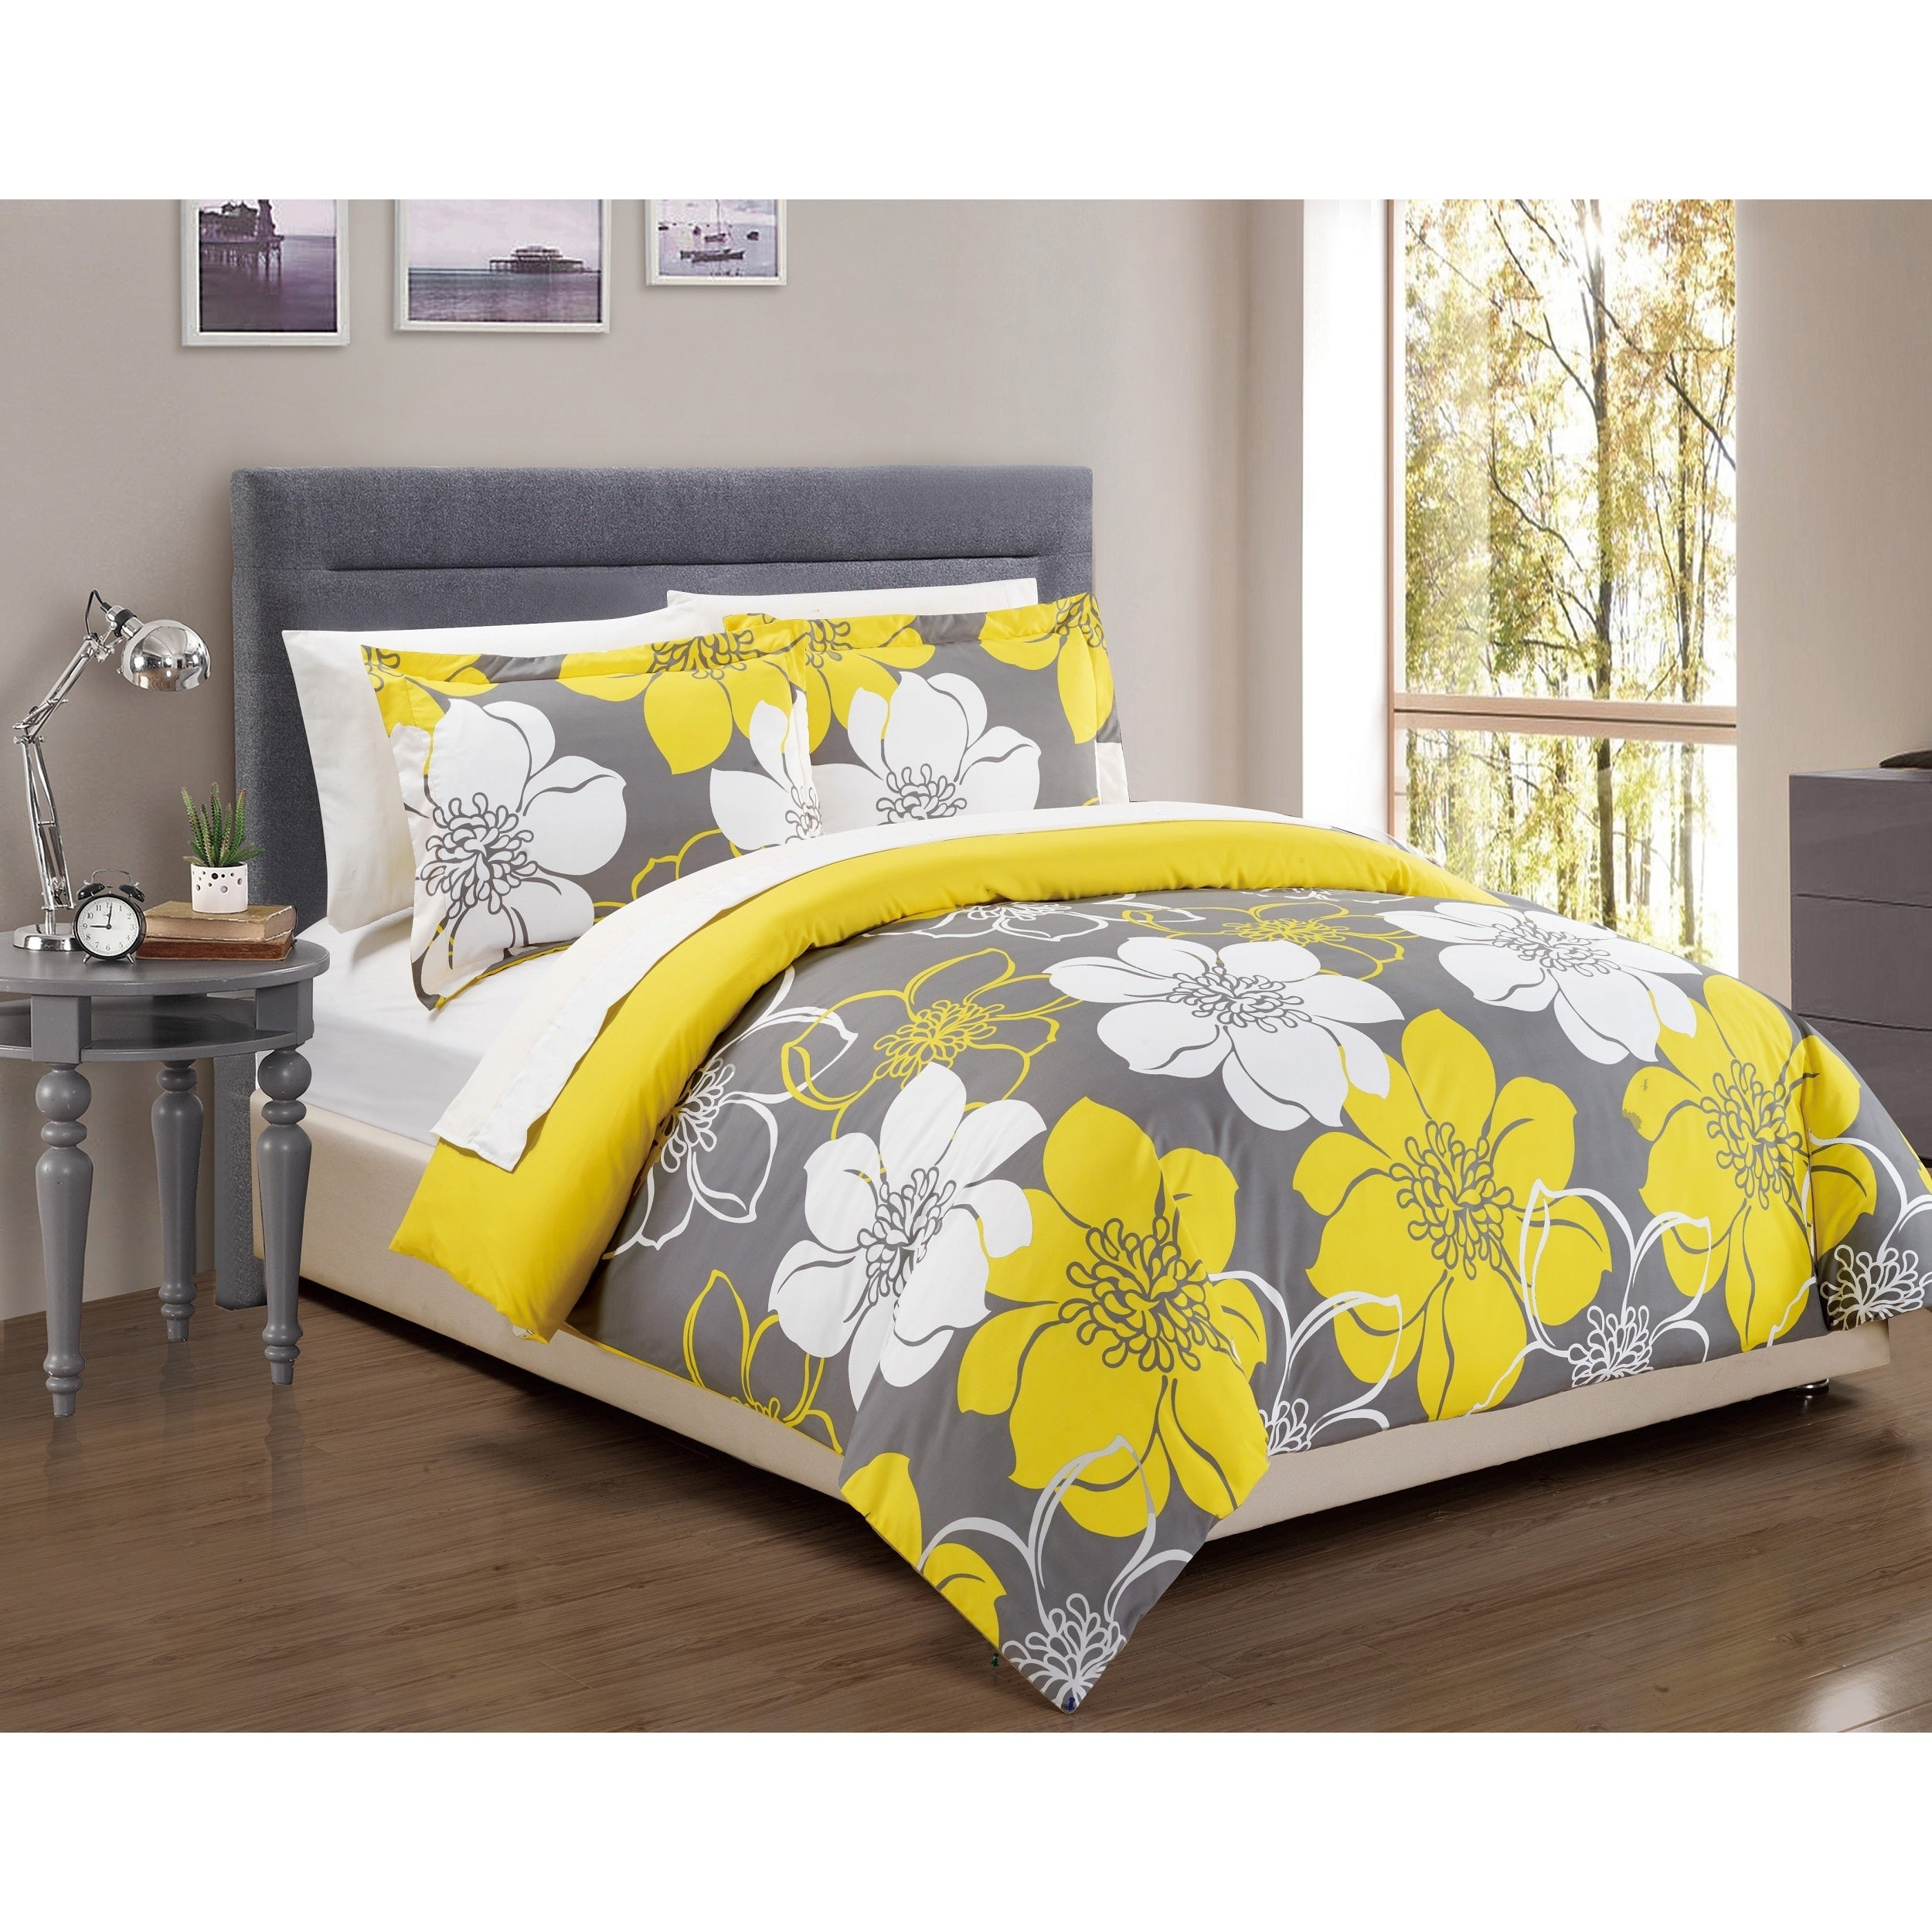 Yellow, Floral Duvet Covers For Less | Overstock.com